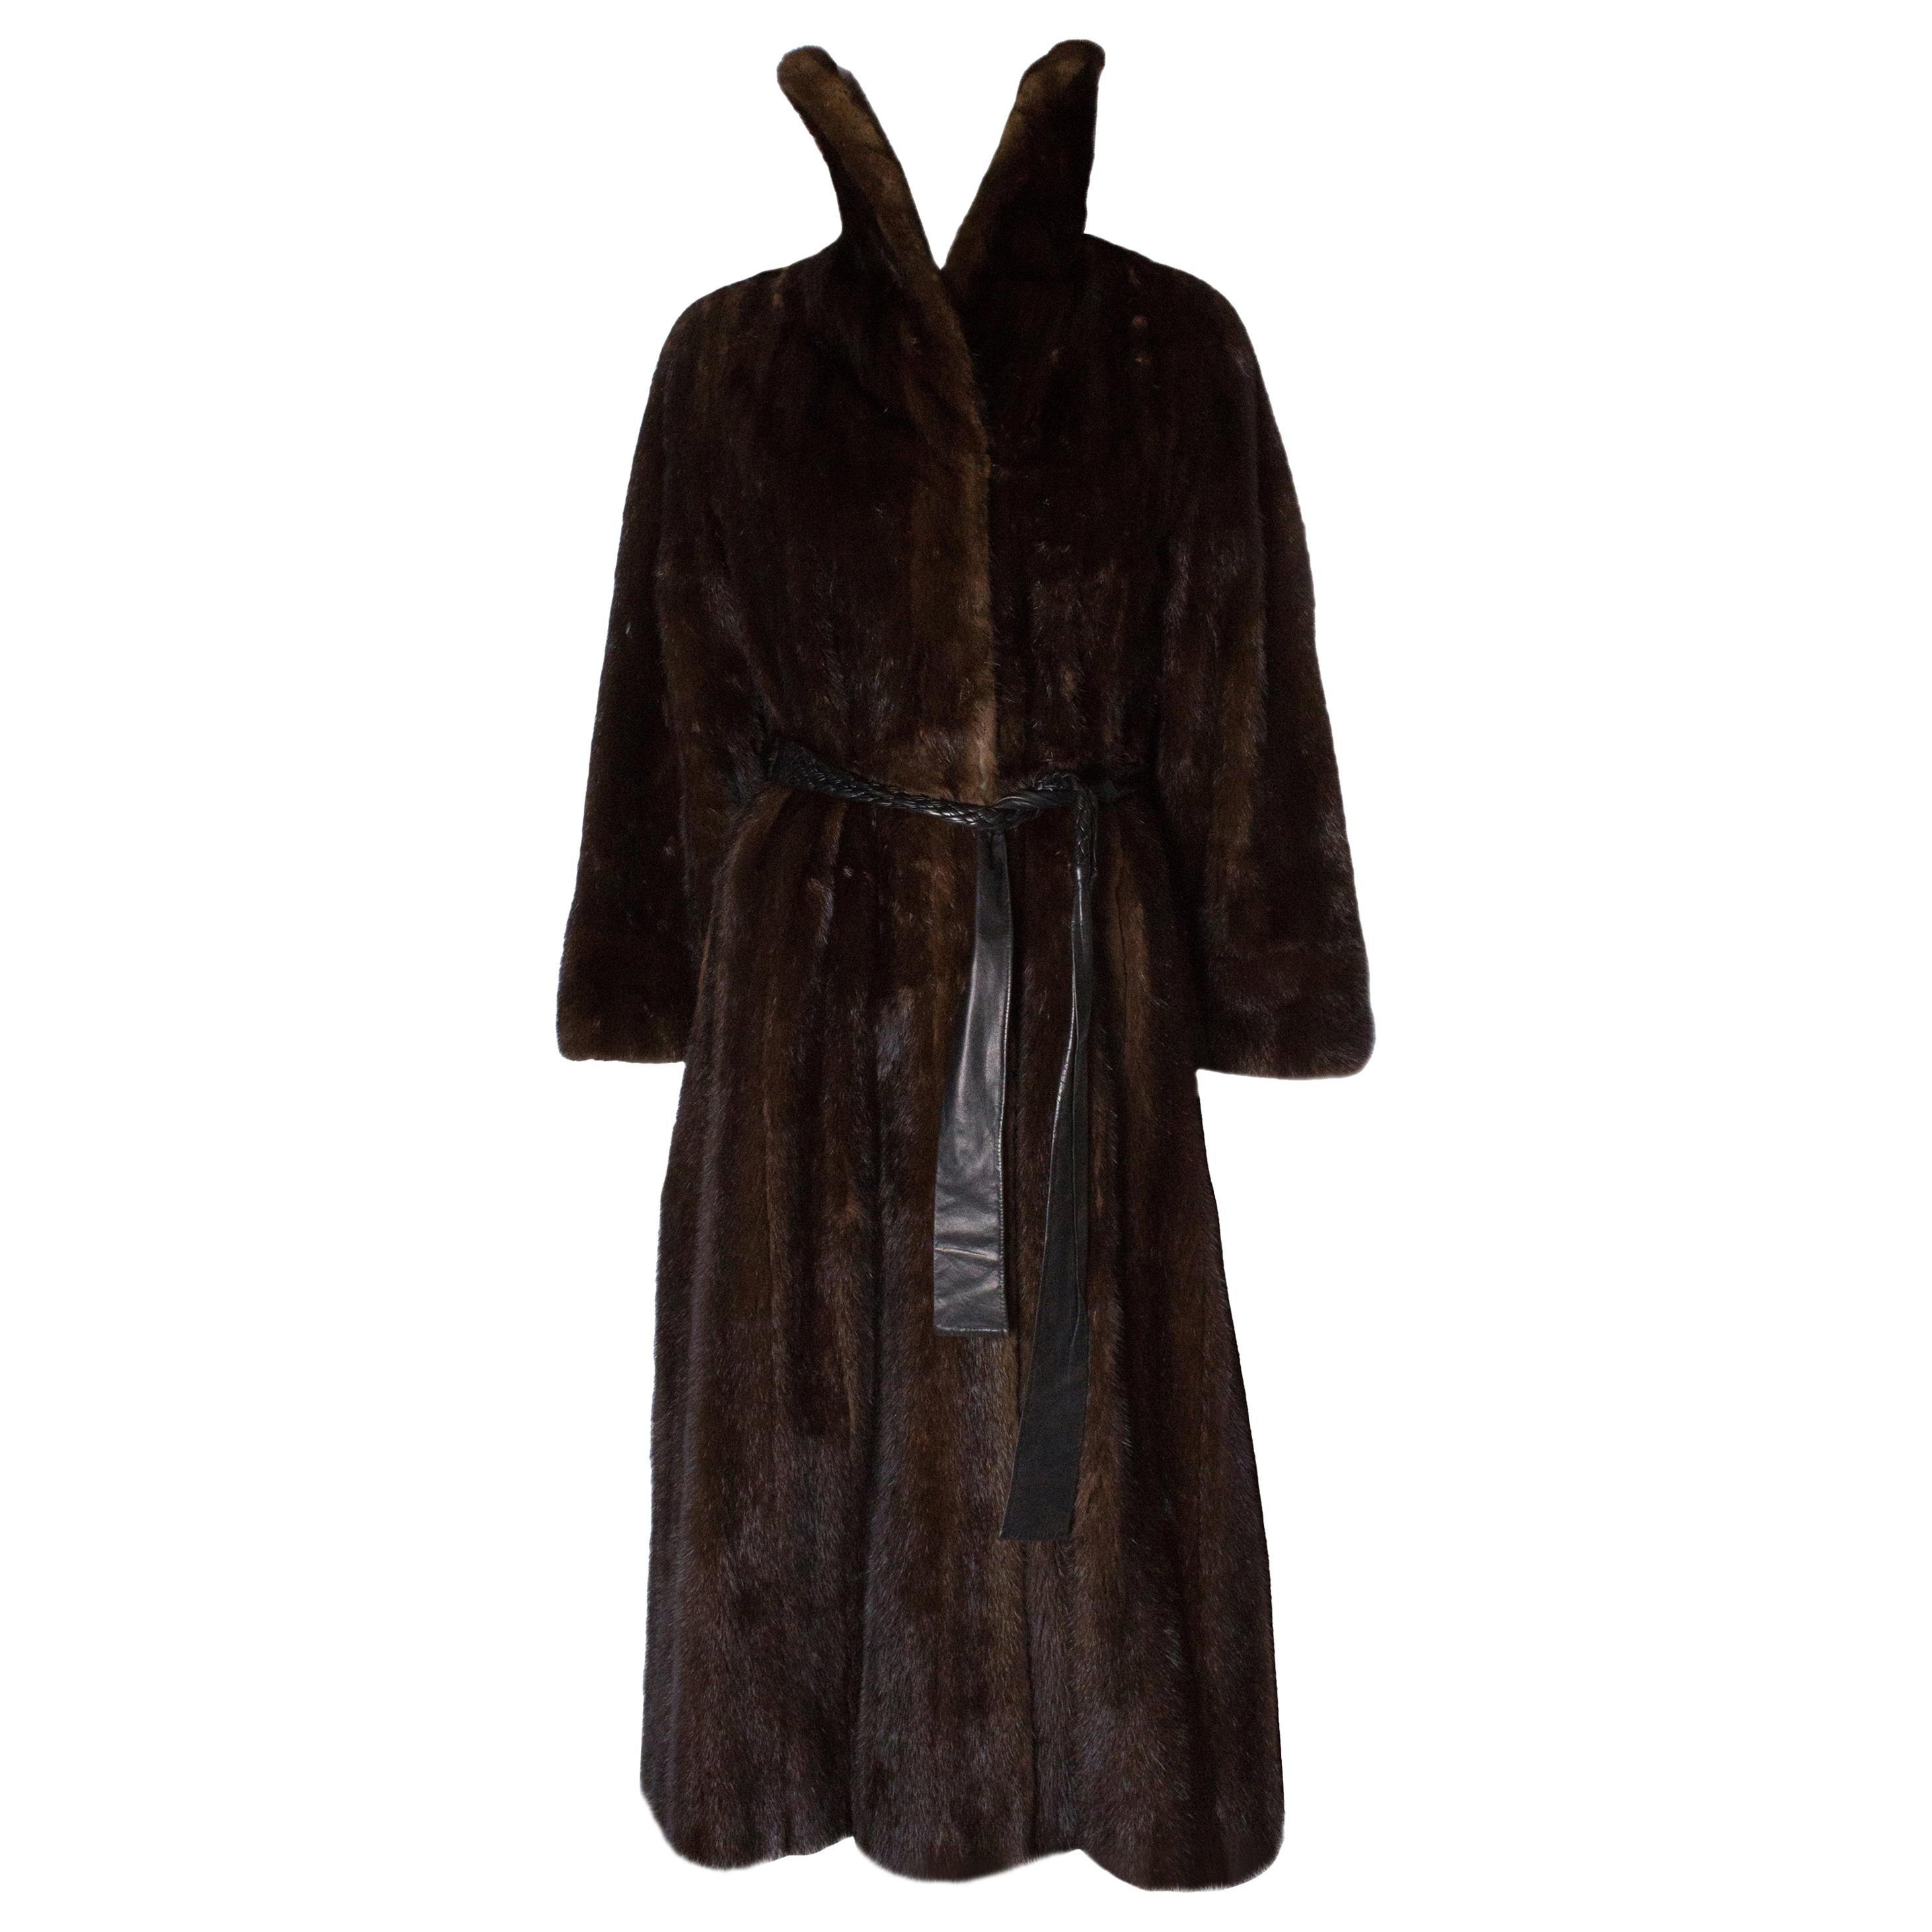 How Much Is A Vintage Mink Coat Worth, How Much Did A Mink Coat Cost In 1980